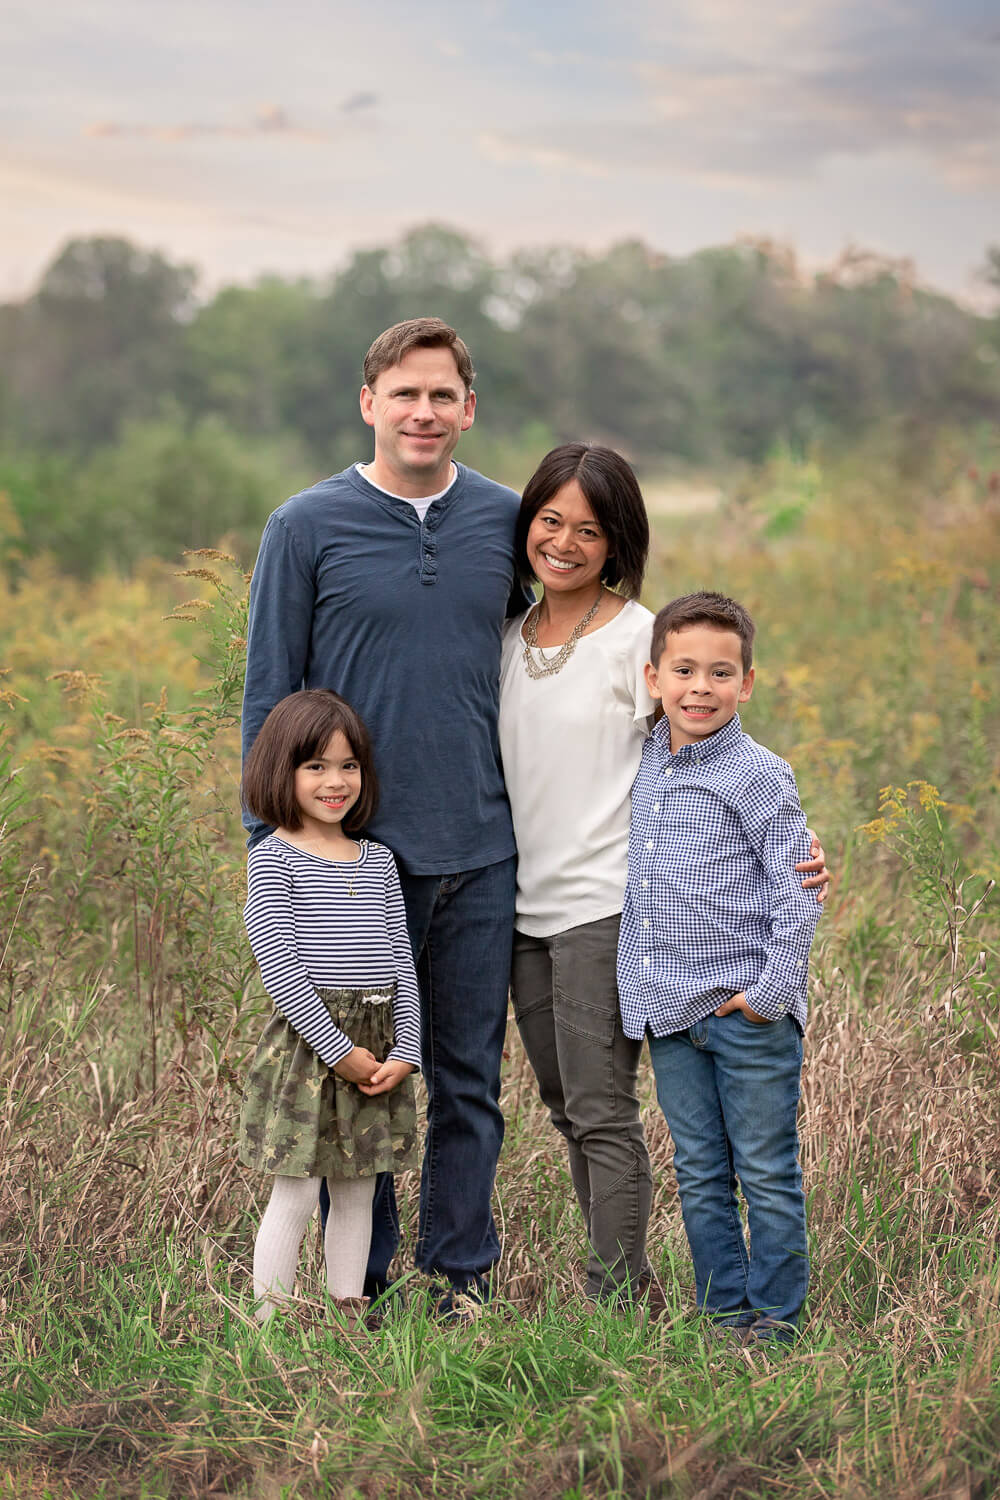 Family of 4 standing in a tall grass field